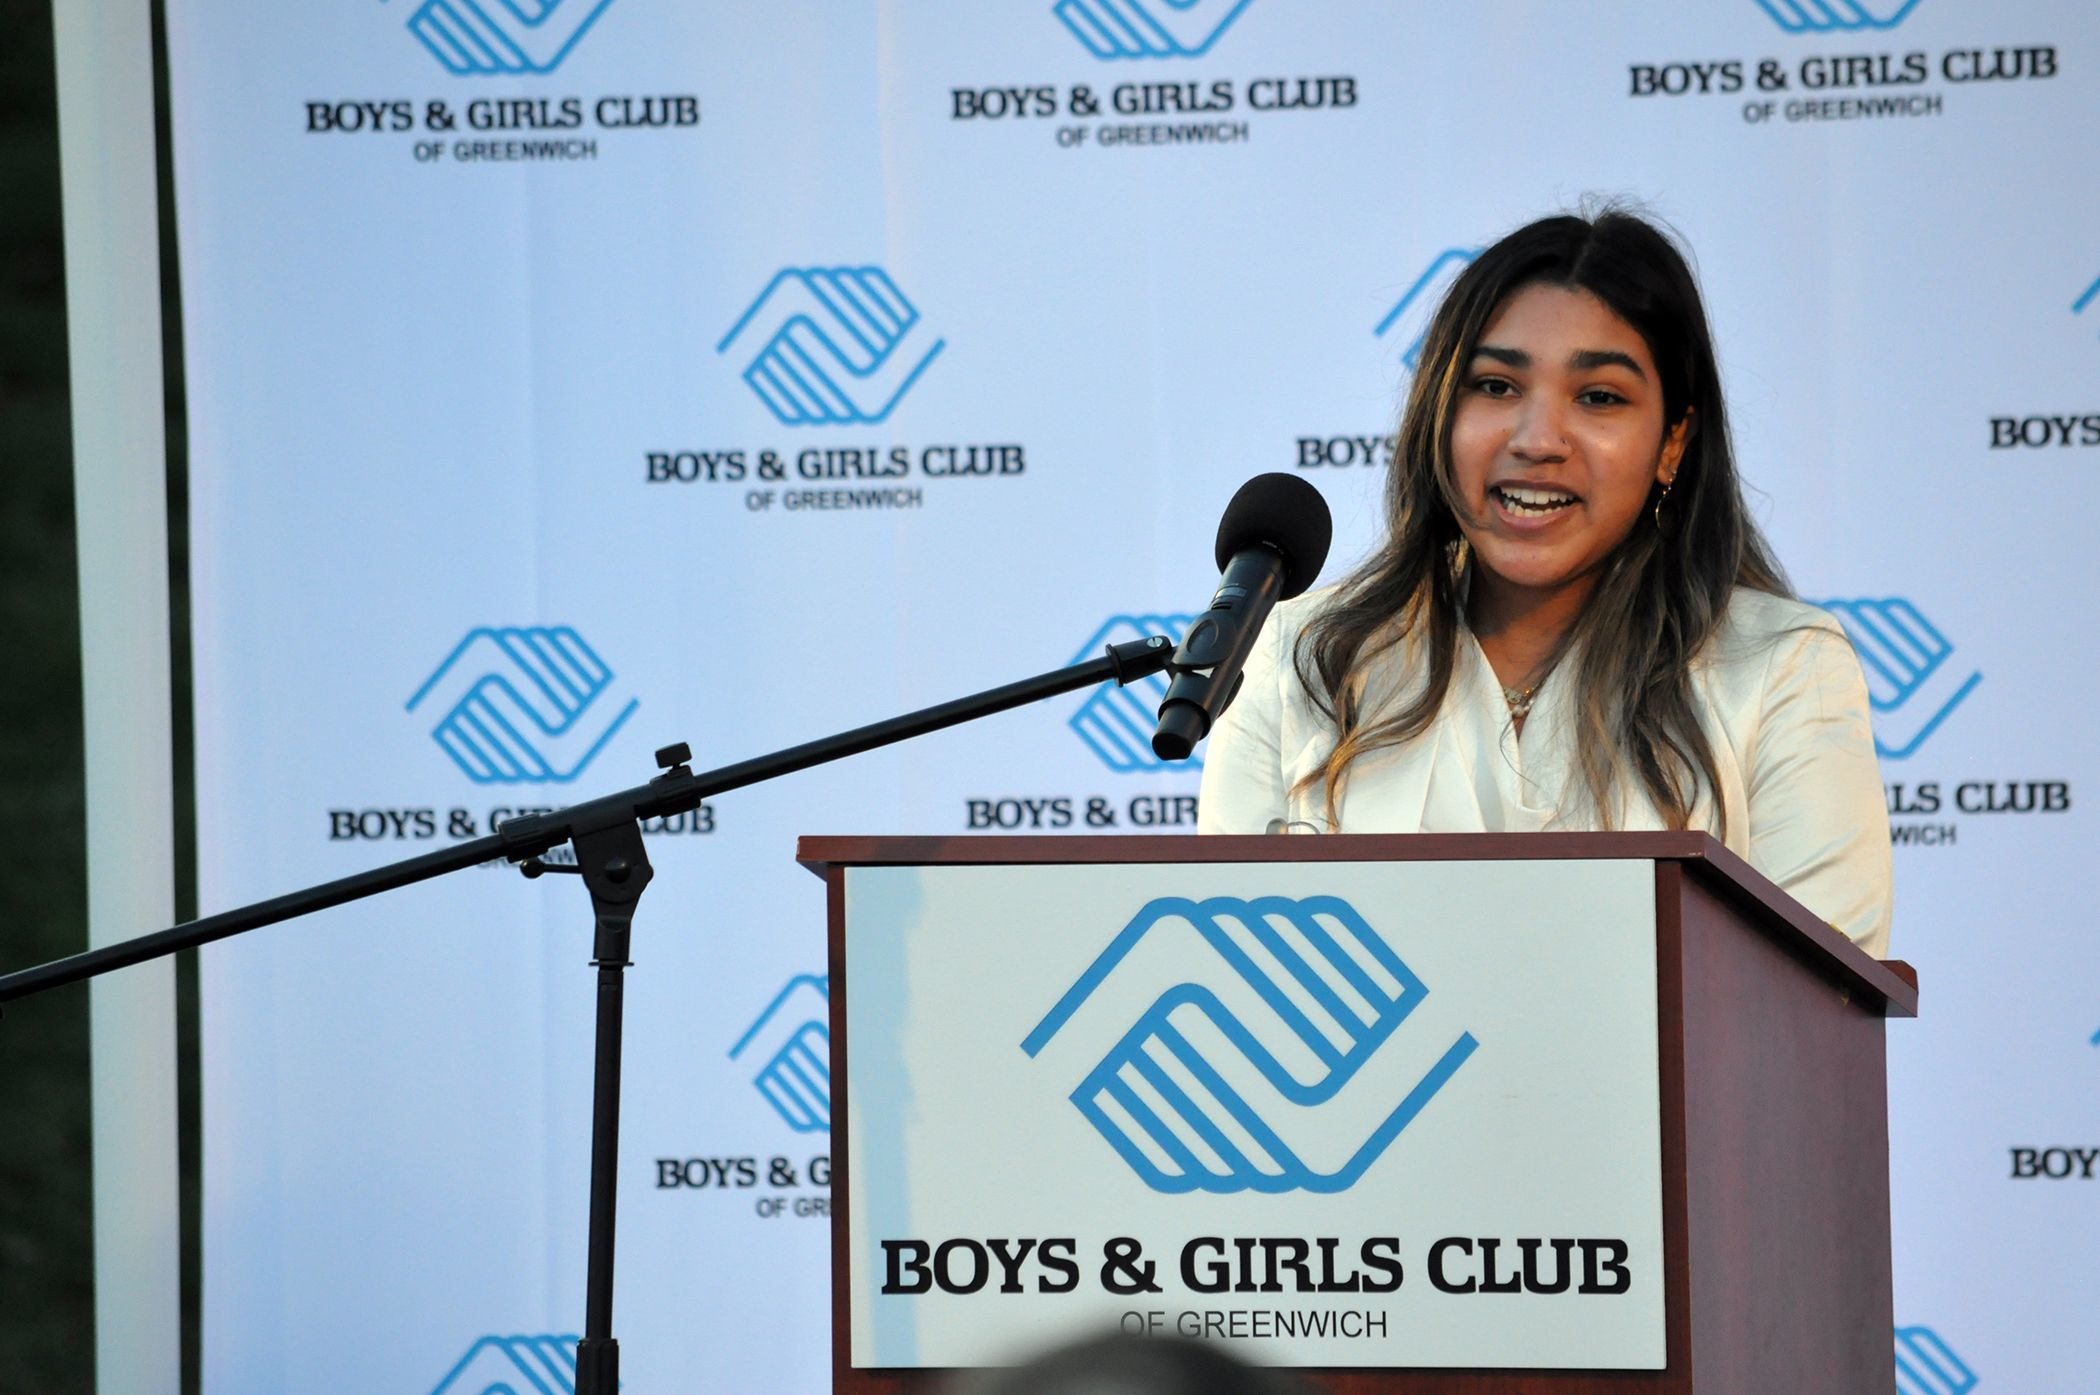 Boys & Girls Club of Greenwich names Damarys Aceituno 2021 Youth of the Year